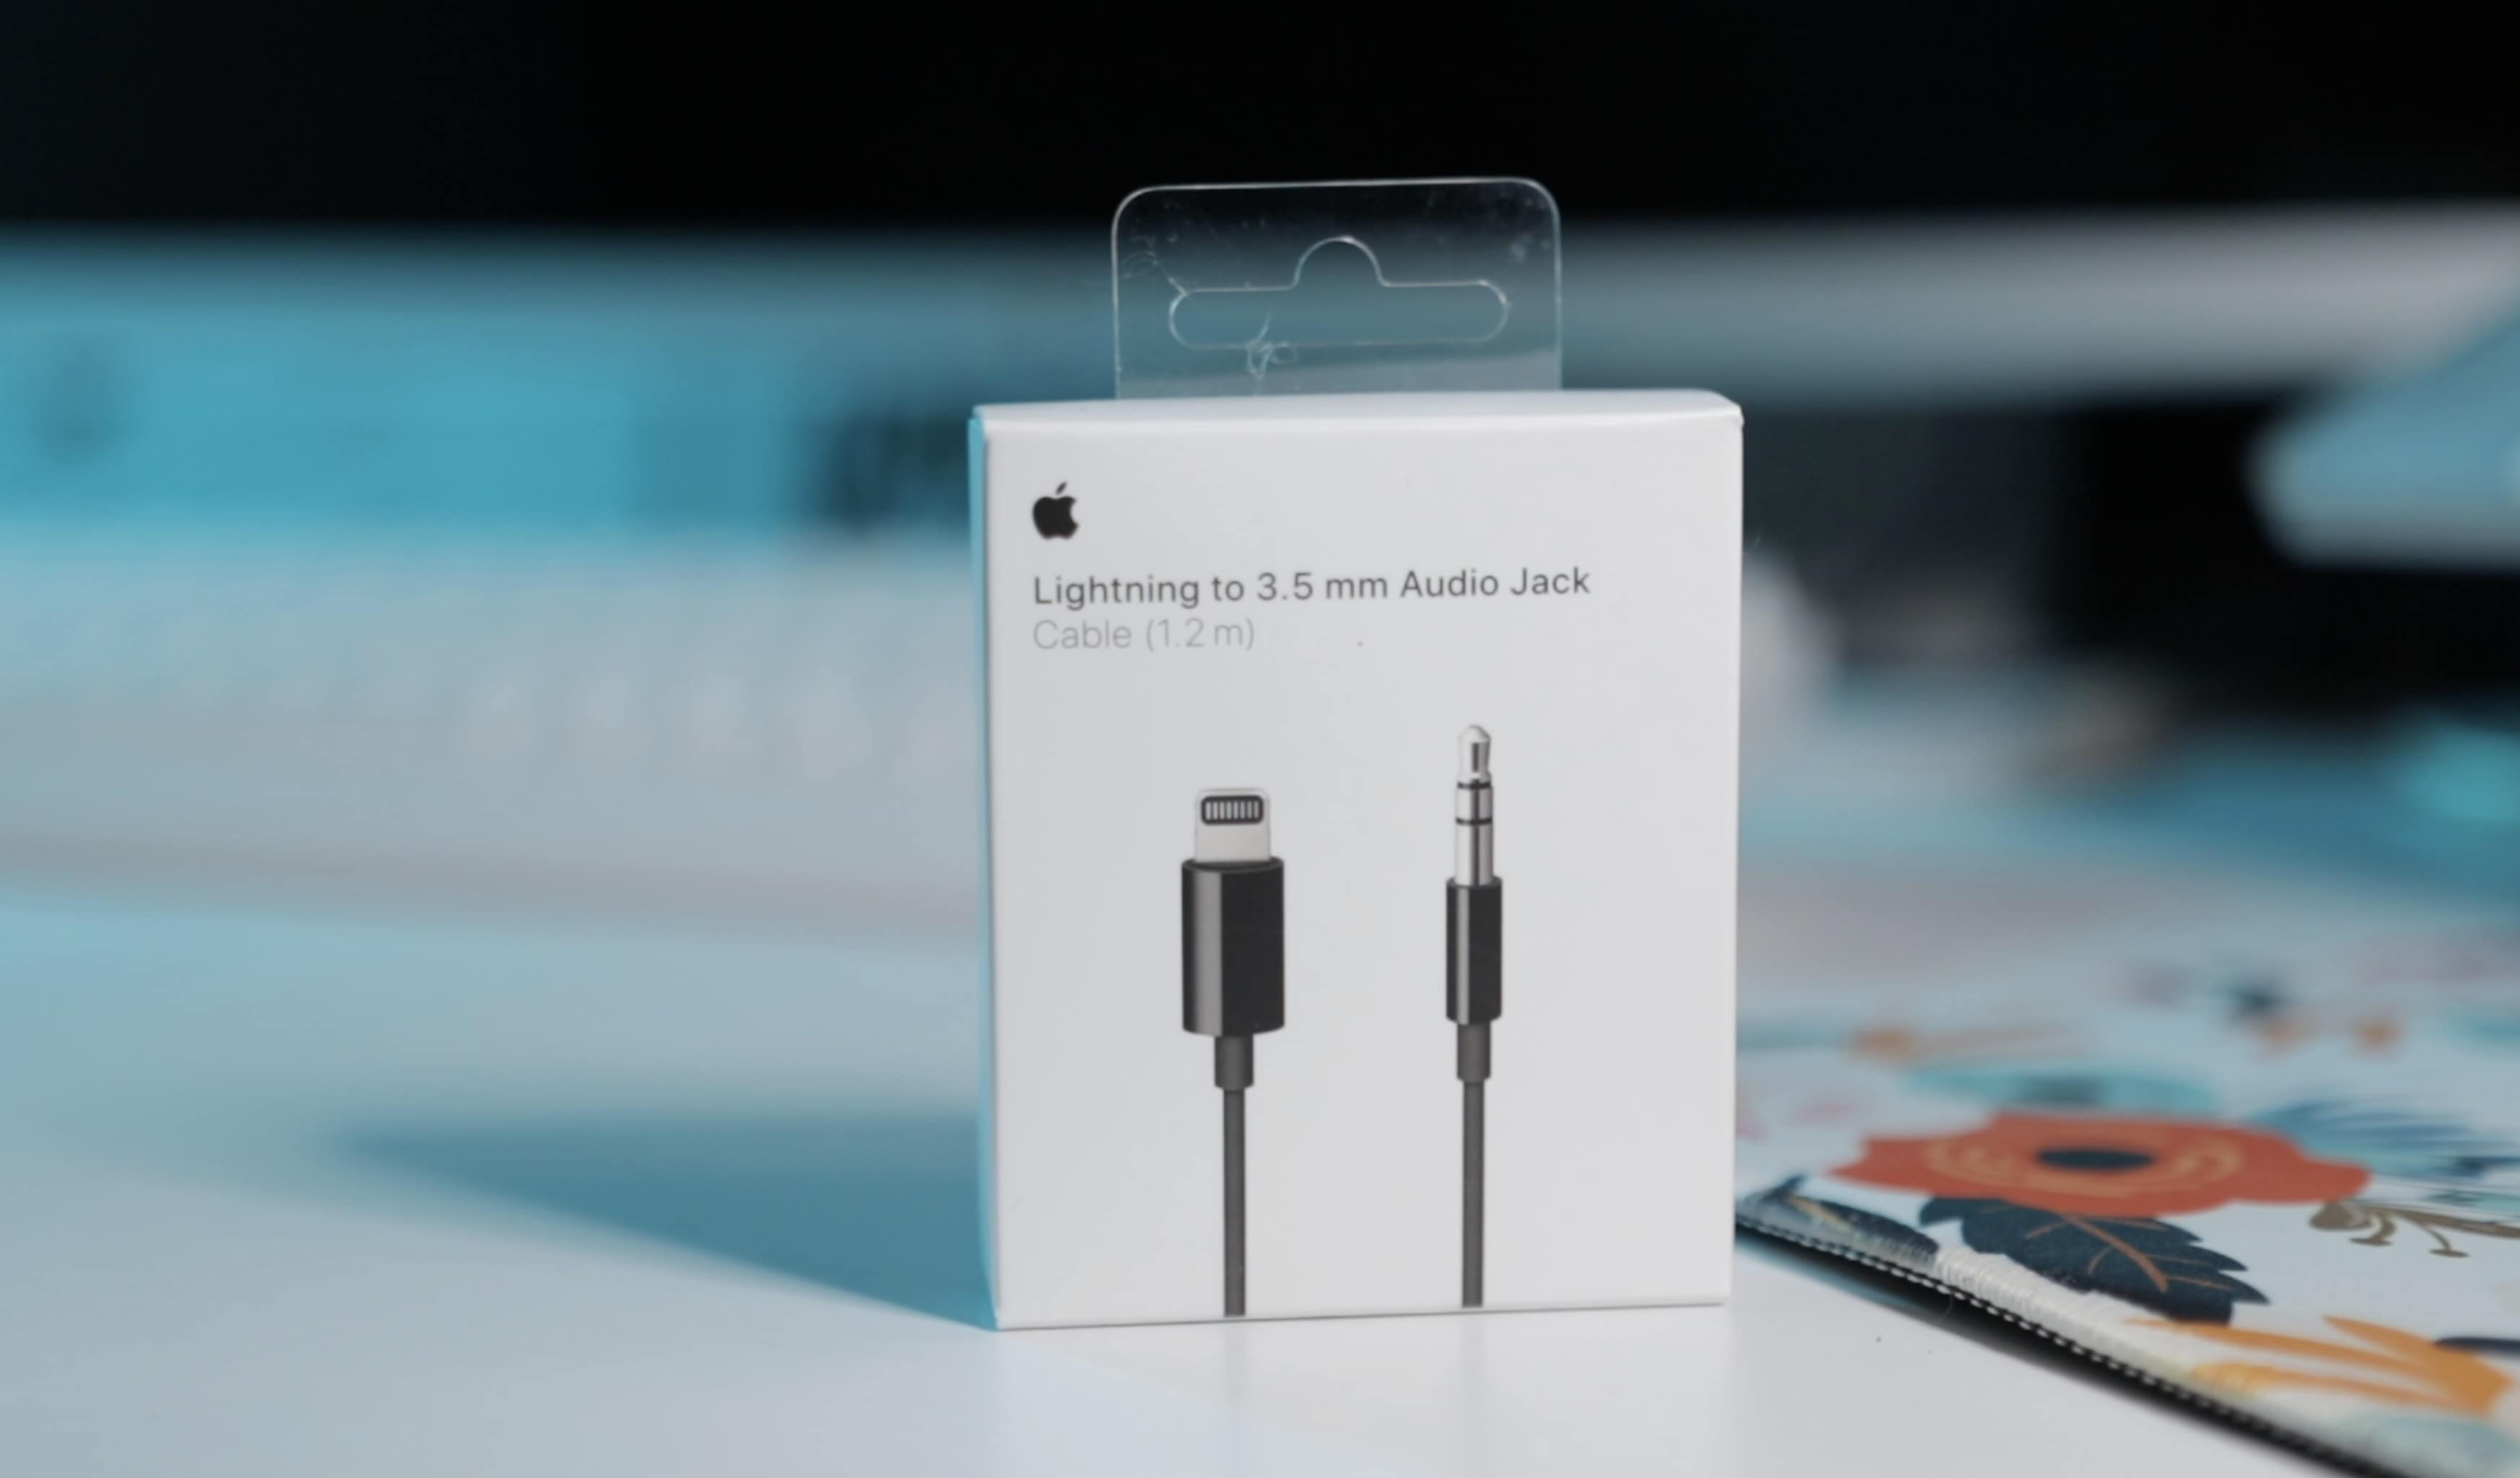 Lightning to 3.5mm aux cable: This $35 cable is the only way to add a wired connection to AirPods Max. It should come packaged with the headphones.